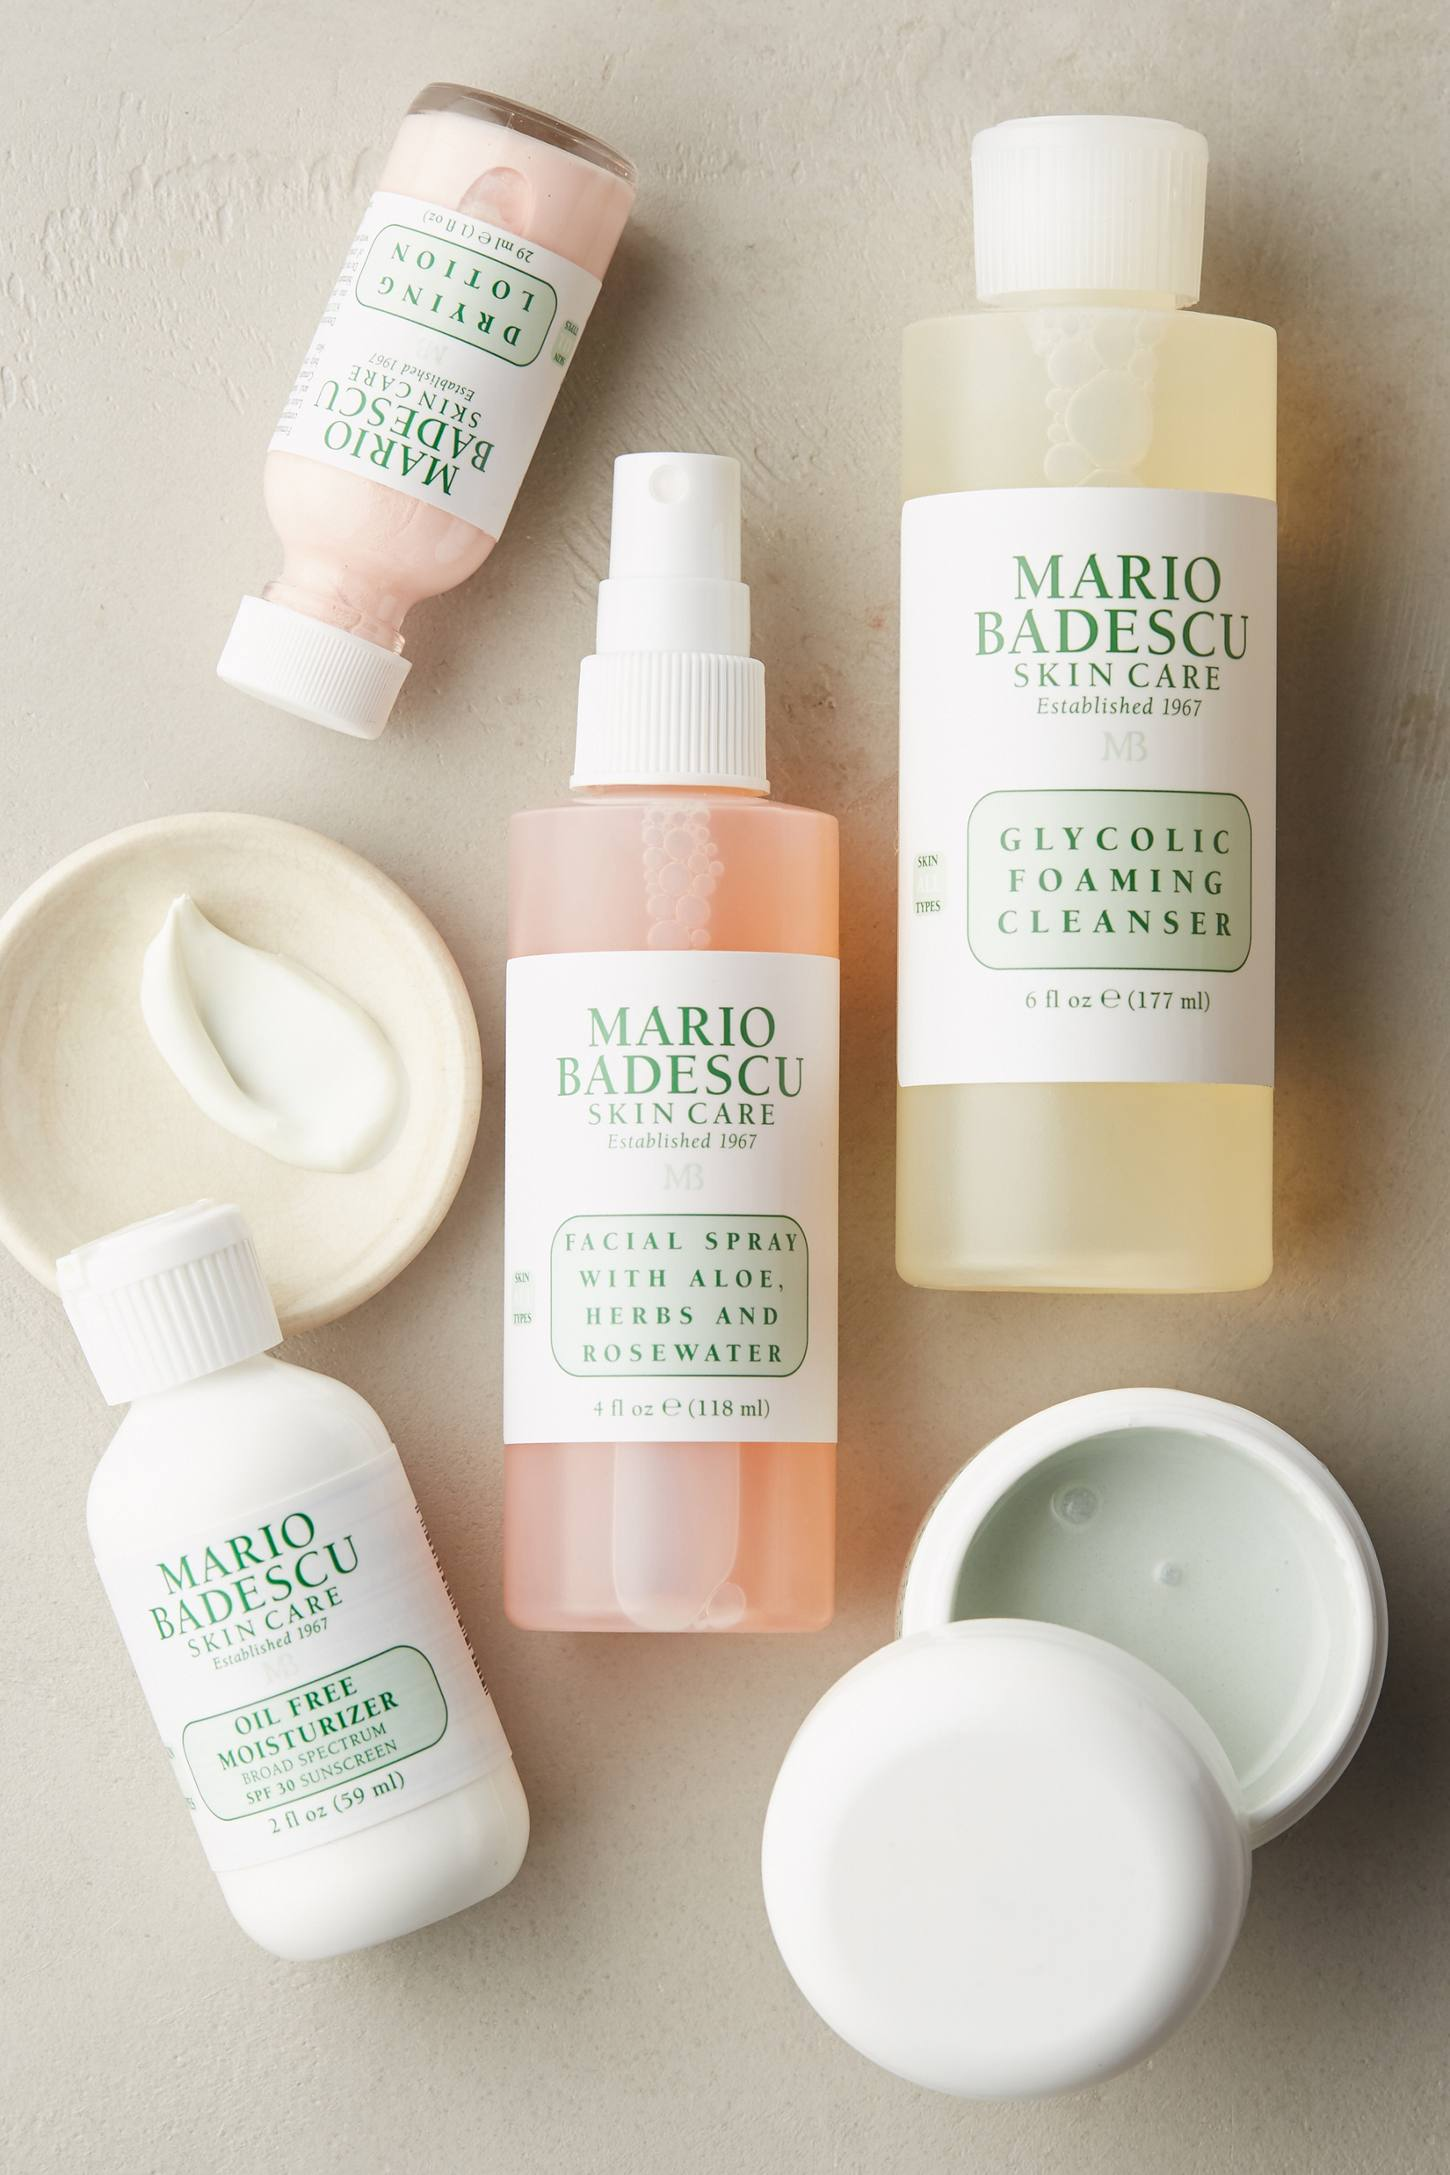 Mario Badescu What began as a skincare salon in New York in is now an internationally renowned skincare brand. The label's botanically-based skincare continues chemist and cosmetologist Mario Badescu's legacy, working magic into your skincare.